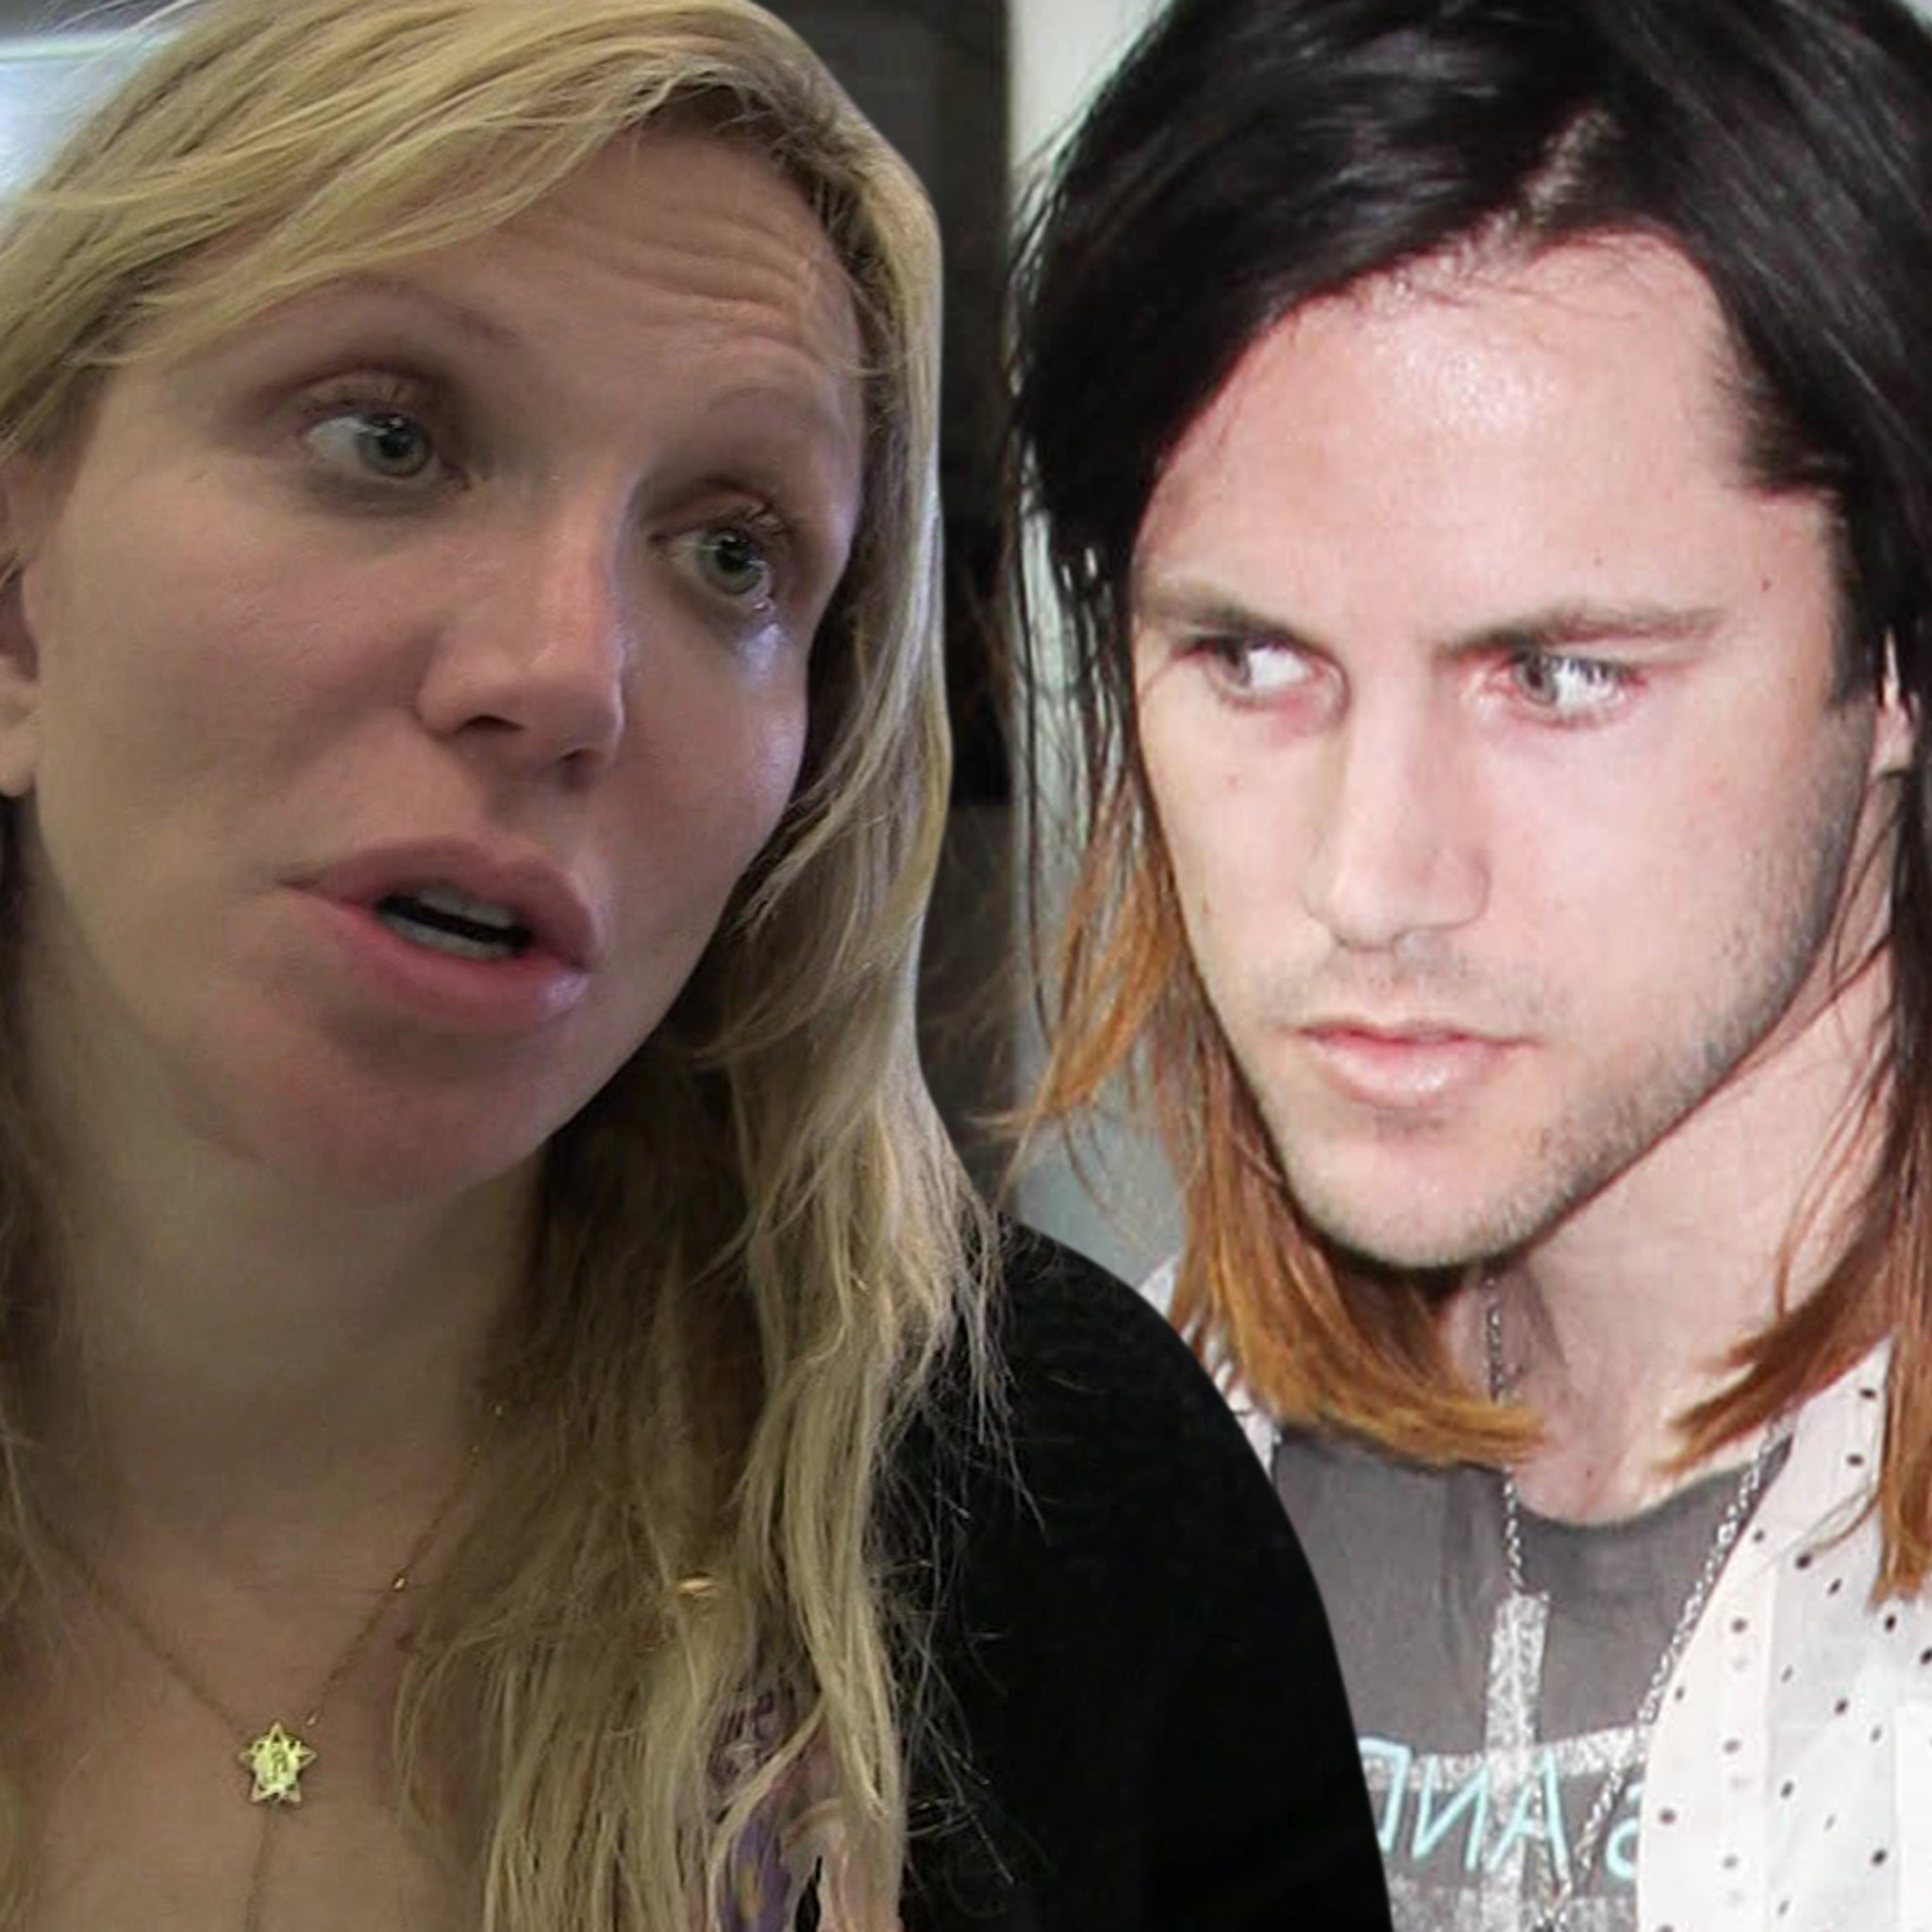 Courtney Love Gets Daughter's Ex to Be Examined in Cobain Guitar Suit